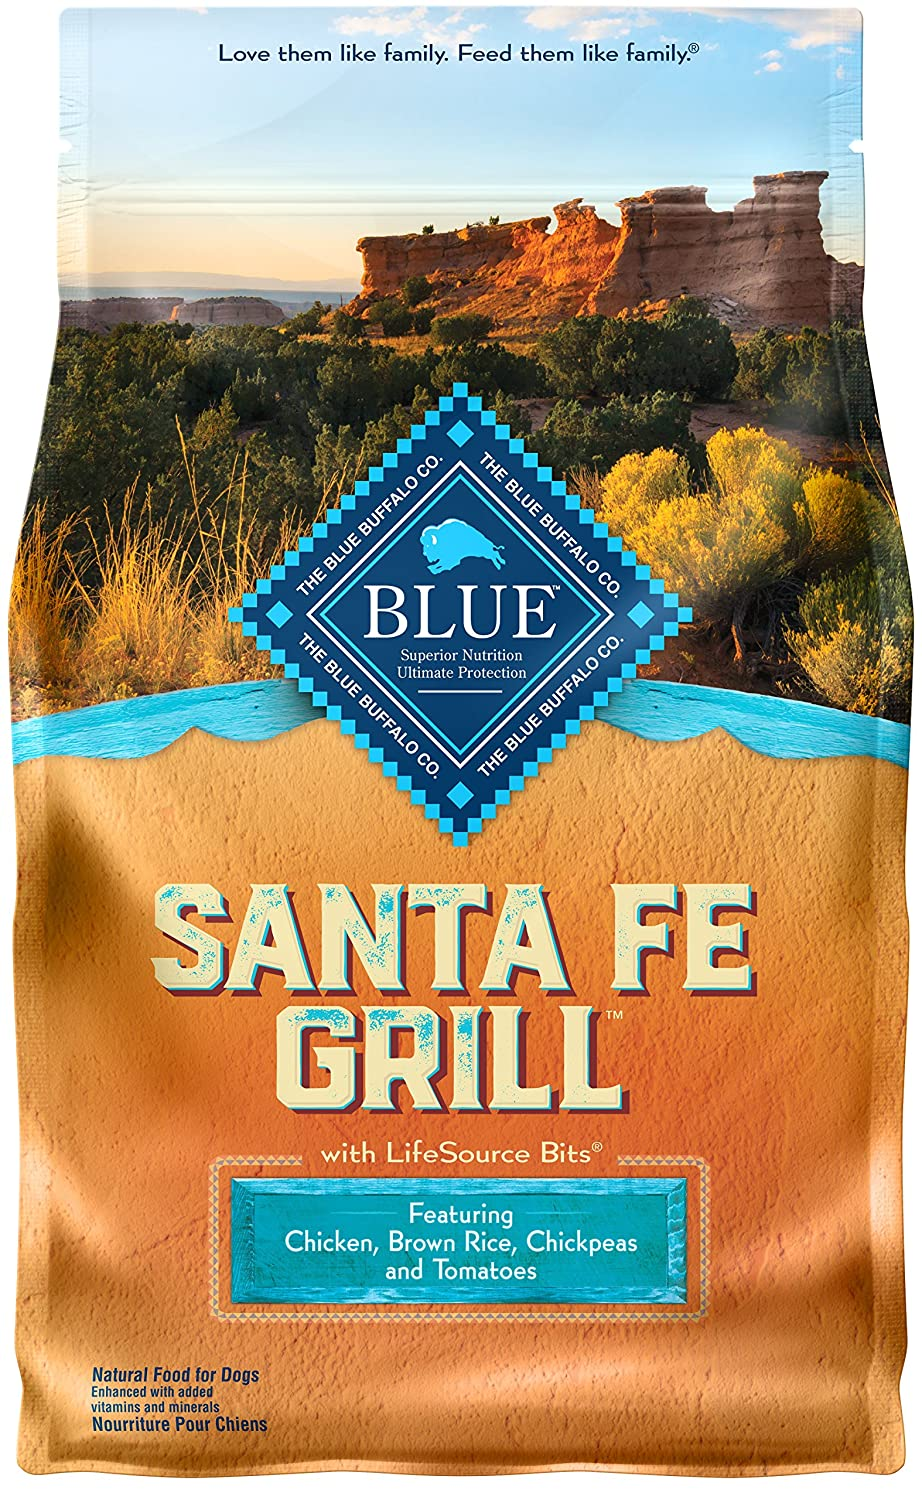 Blue Life Protection Dog Food Buffalo Santa Diamond Roasted Almonds Barbecue 130 Gr Fe Grill Natural Adult Dry With Usa Farm Raised Chicken 1 Count